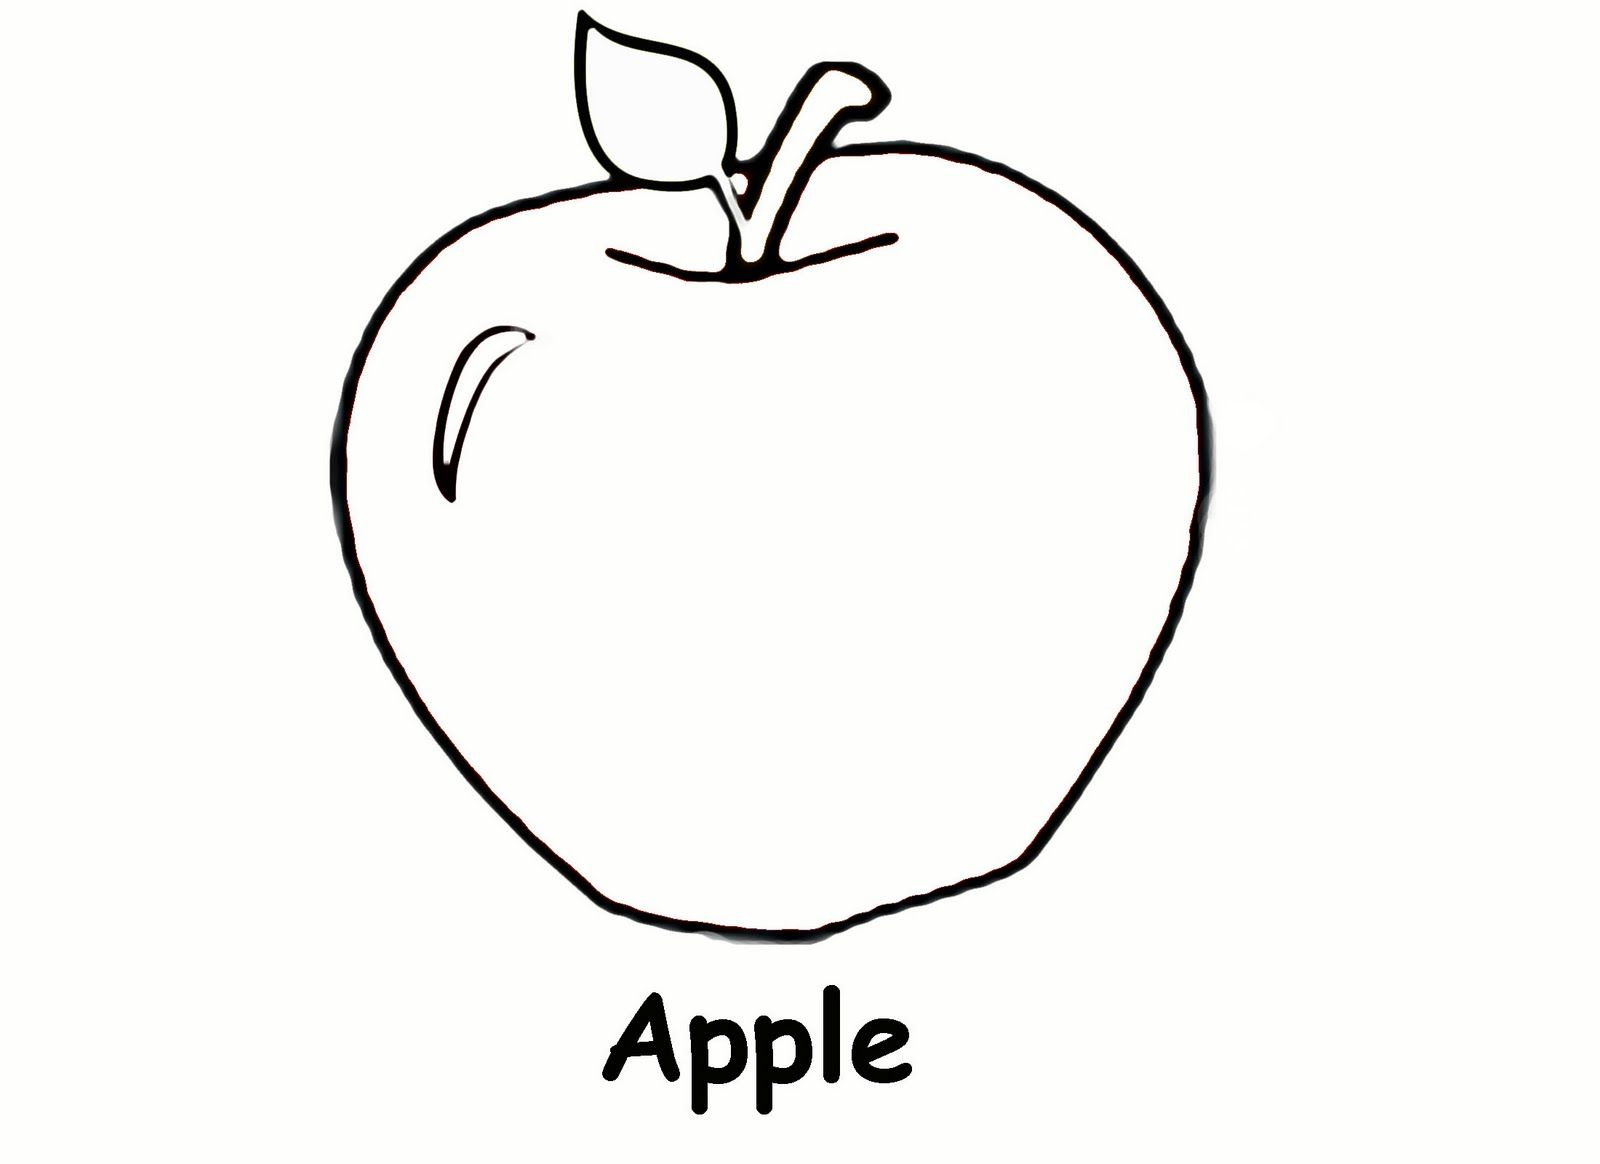 Coloring sheets of fruit trees - Free Coloring Book Pages Free Printable Apple Coloring Pages For Kids